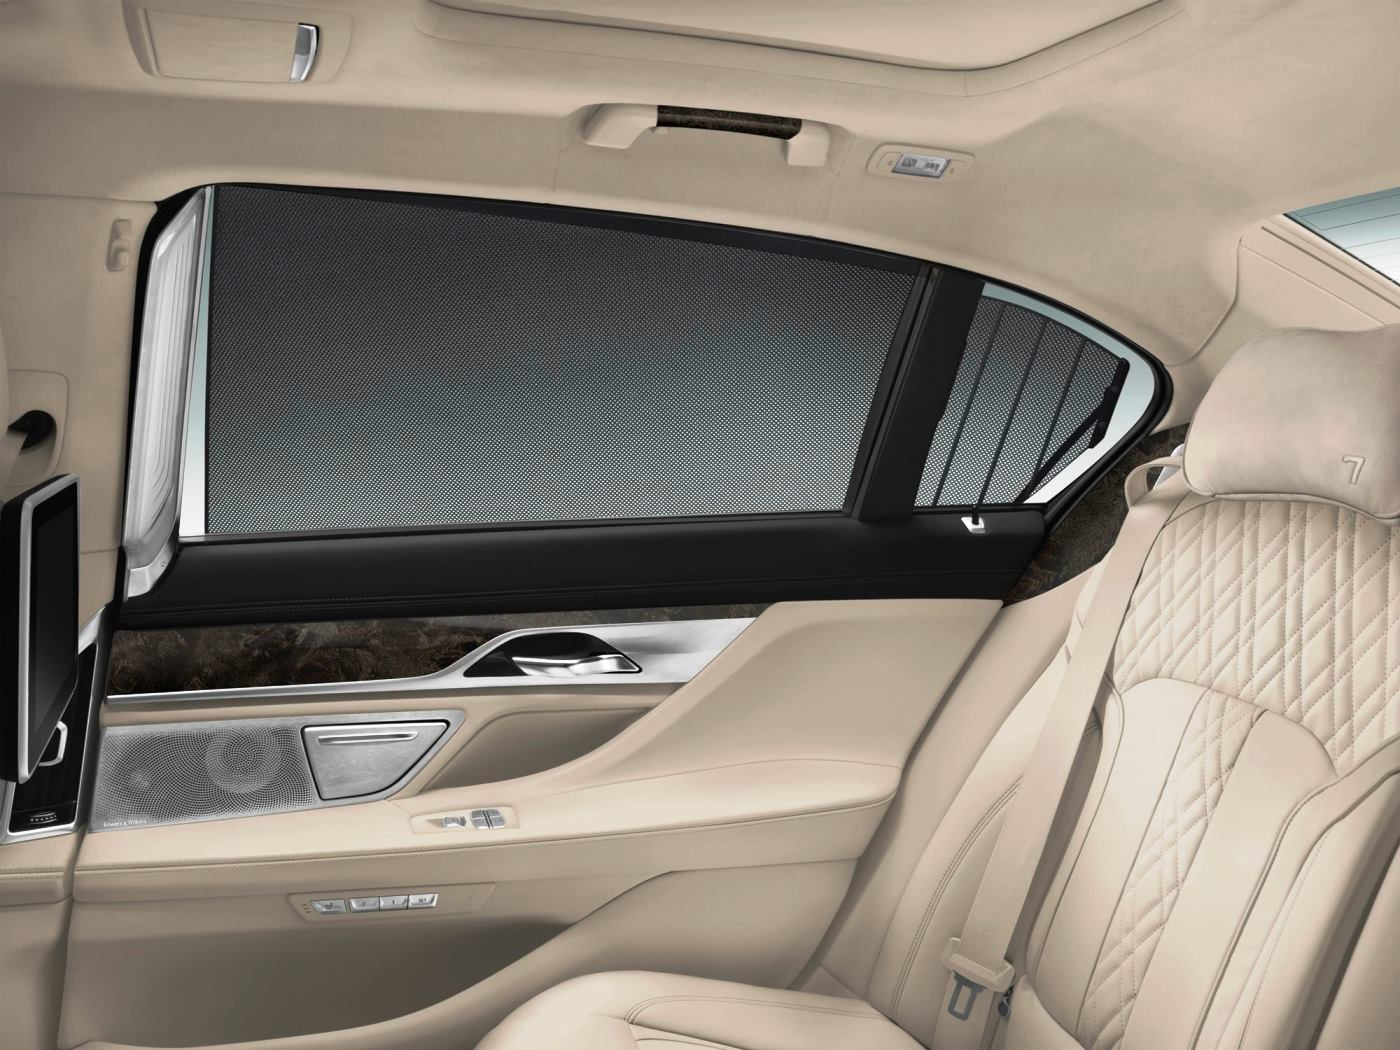 2016 BMW 7 Series Interior Photos 15